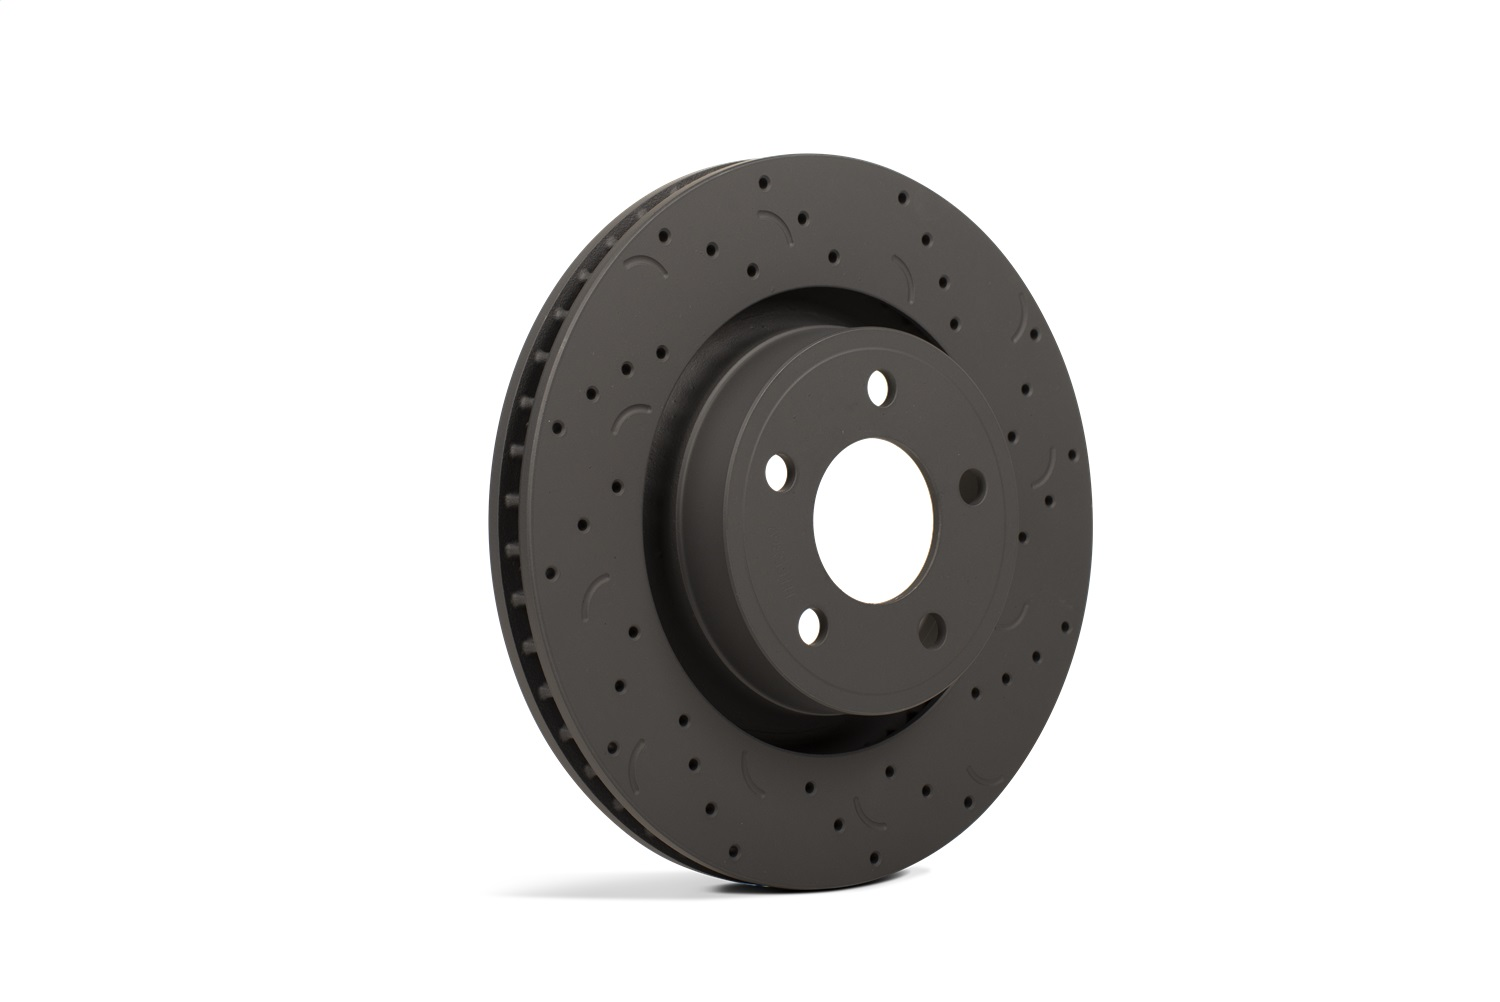 Hawk Performance Brakes HTC4909 Talon Cross-Drilled and Slotted Vented Rotor 12.58 in Diameter 1.94 in Height